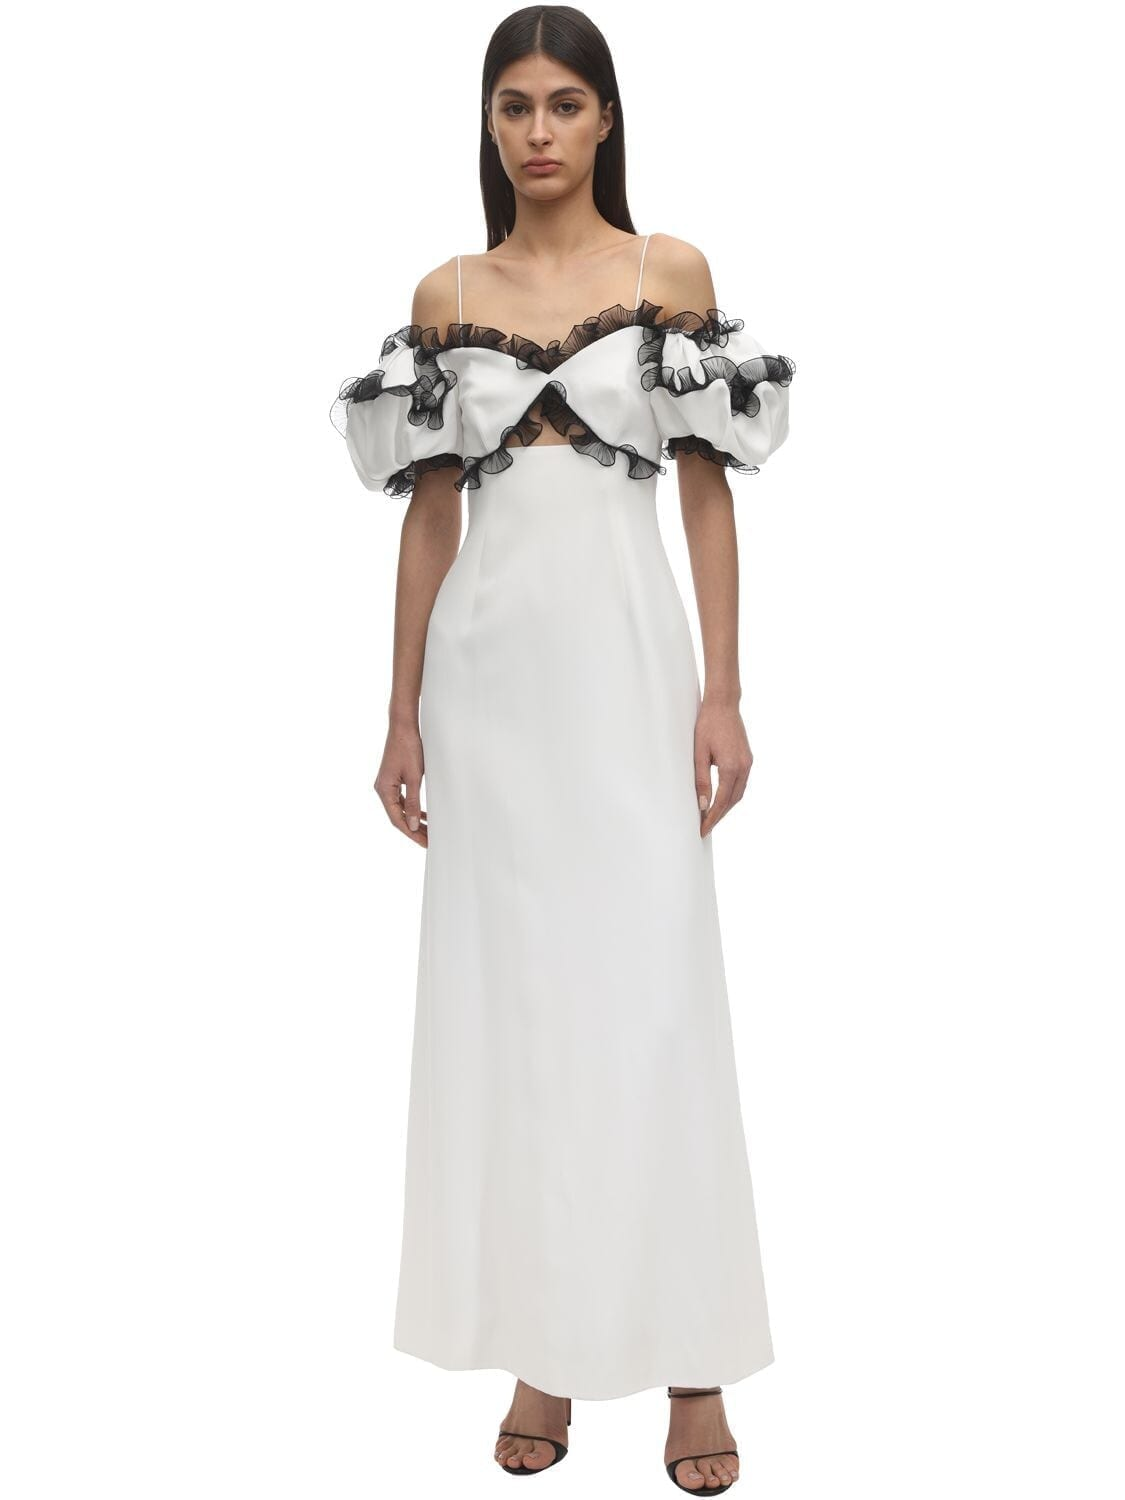 GIVENCHY Ruffled Crepe Envers Satin Dress